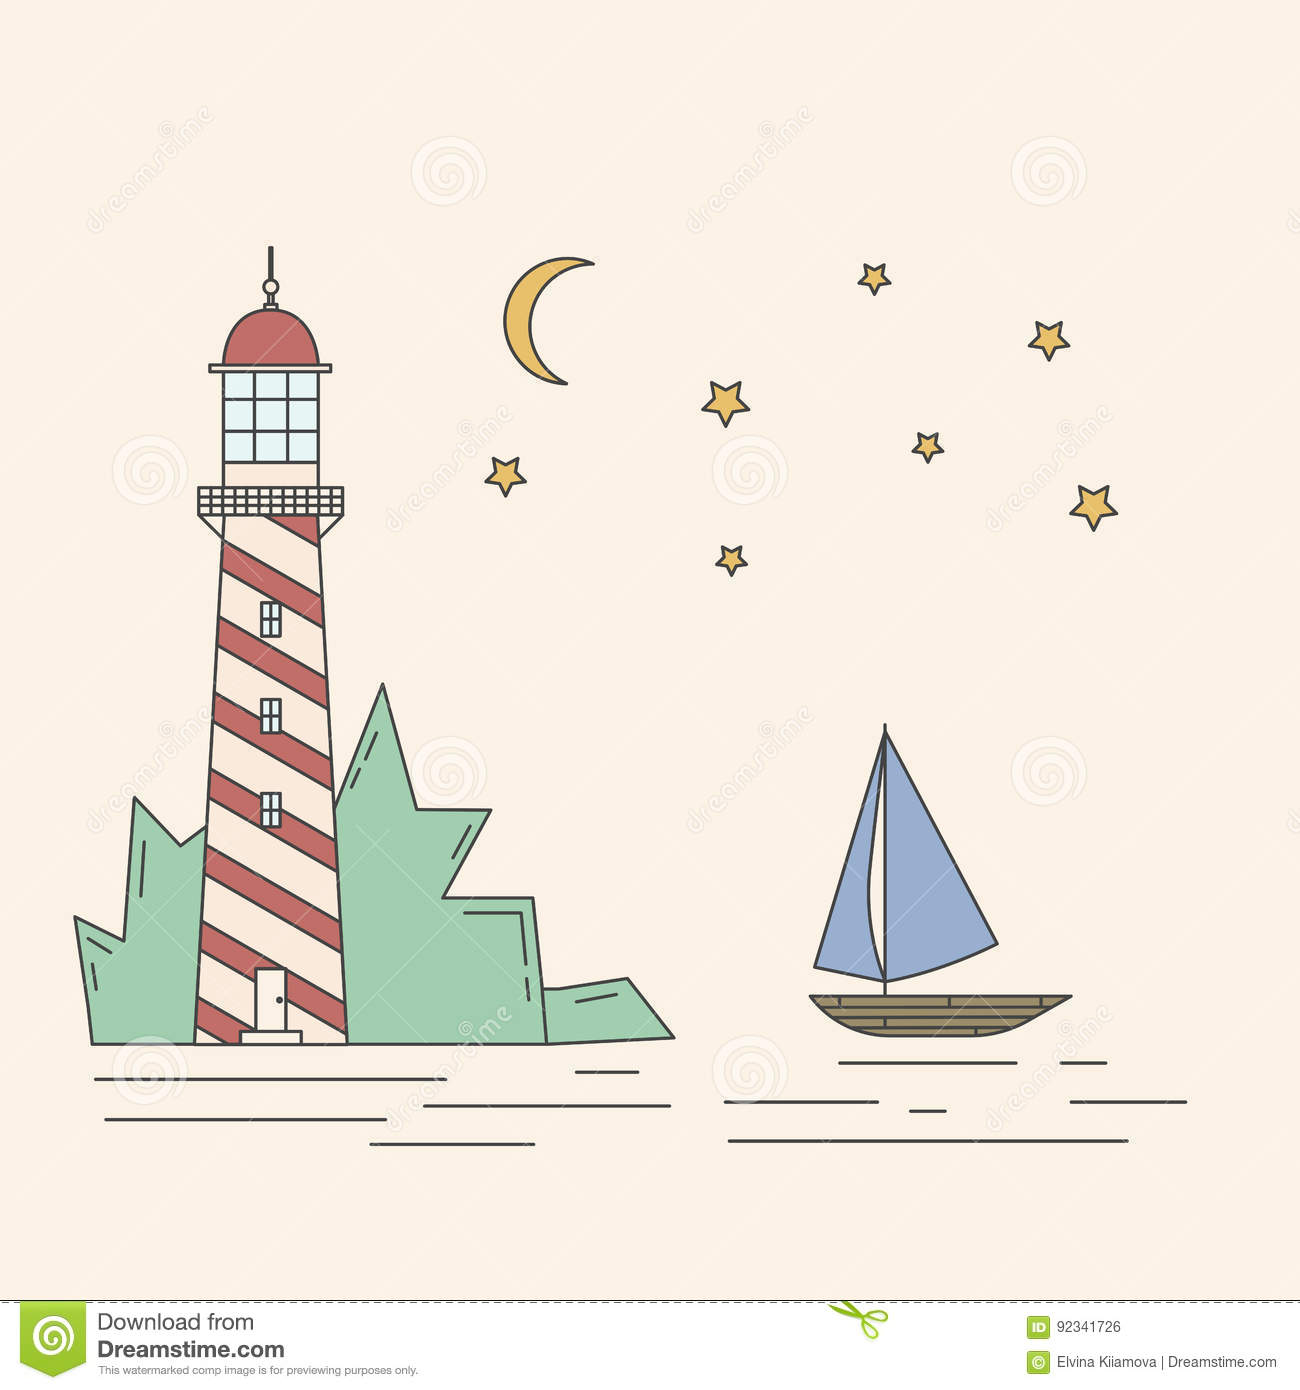 Leuchtturm, Meer, Segelboot, Mondschein nightvector Illustration